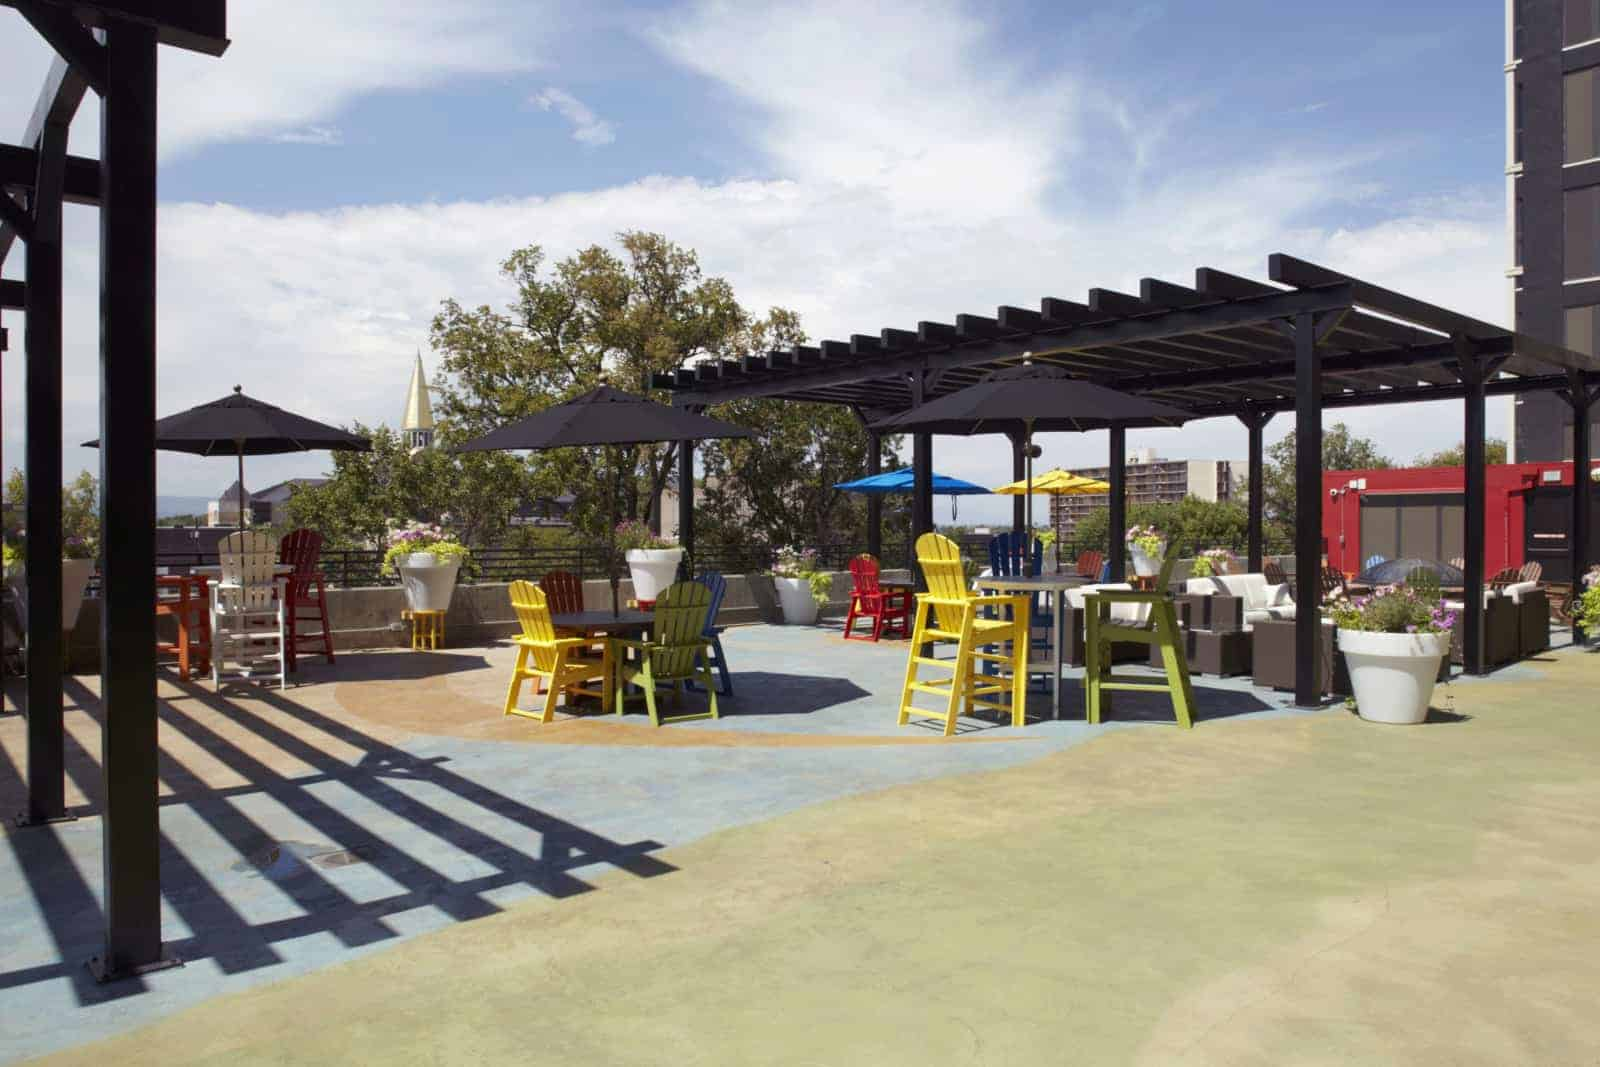 Roofdeck with adirondack chairs and barstools, couches, tables, umbrellas, and trellis.